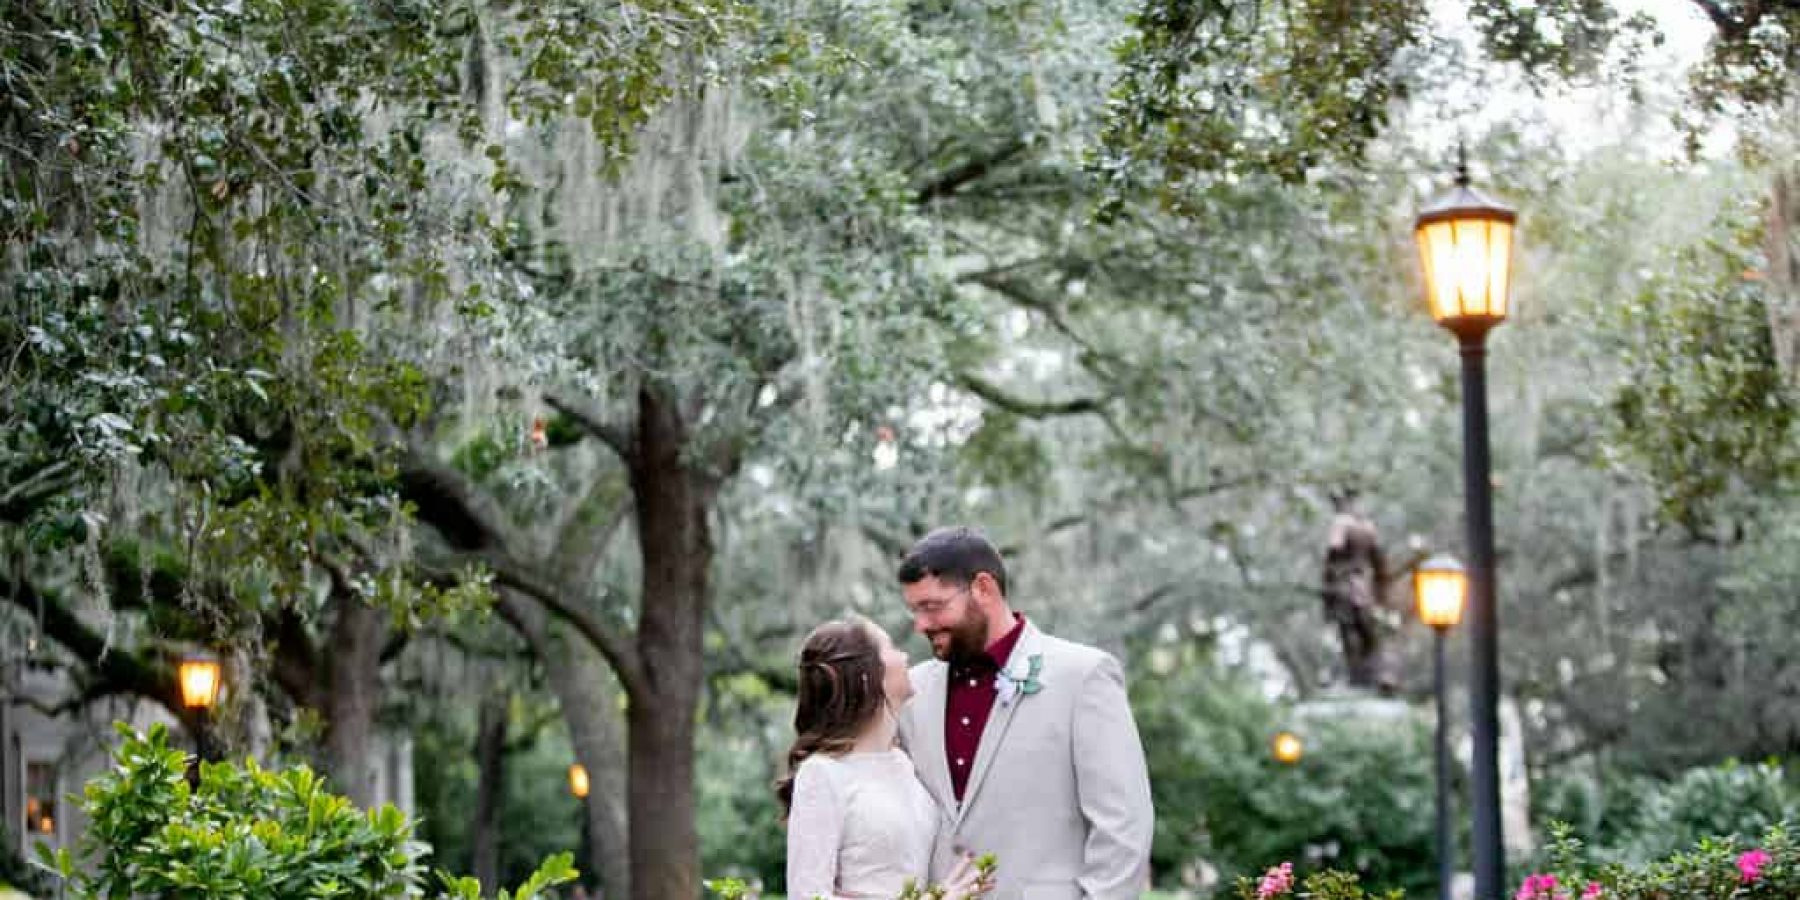 November is a Magical Time to Elope in Savannah